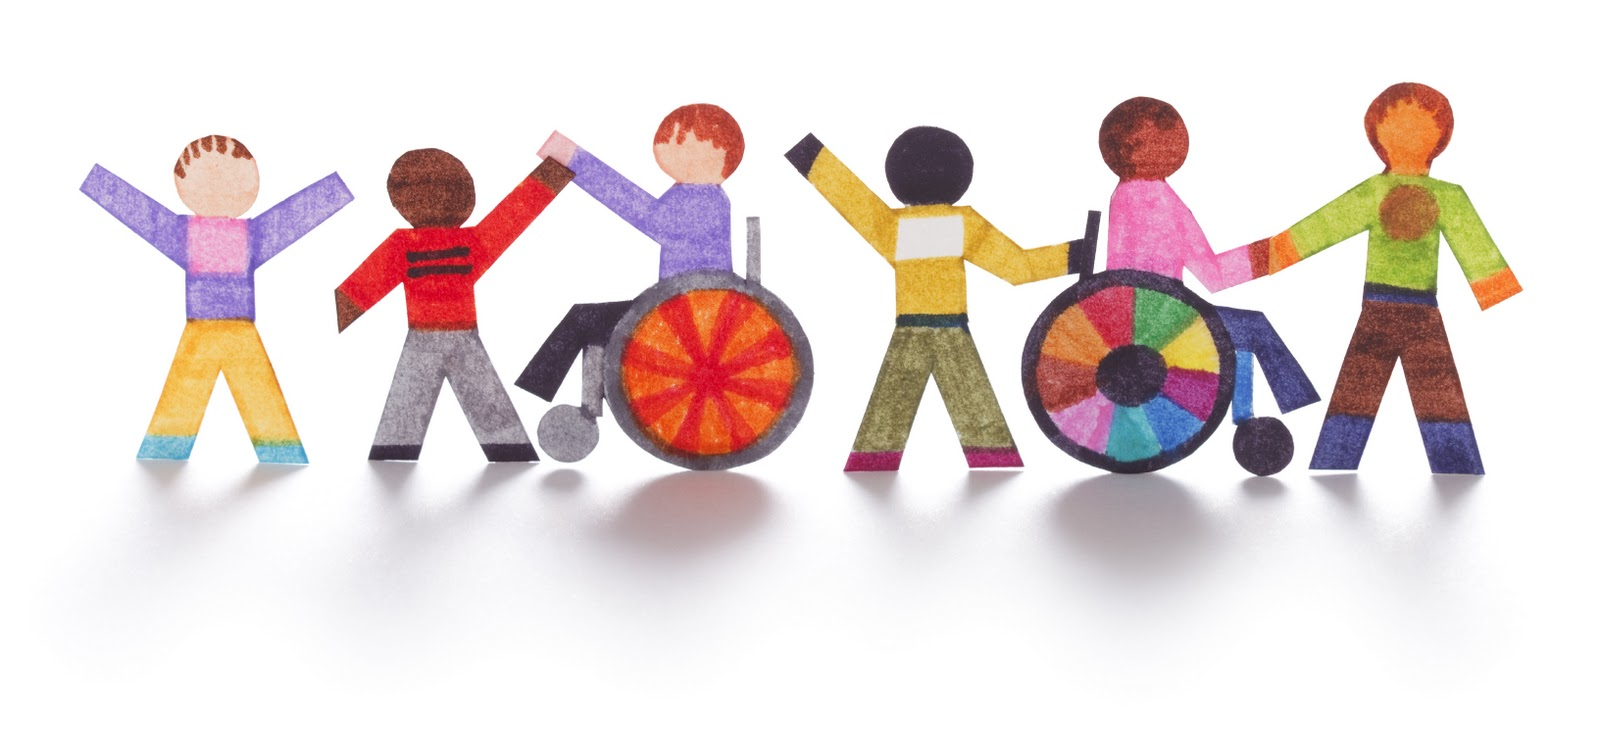 Special needs program image. Autism clipart additional need